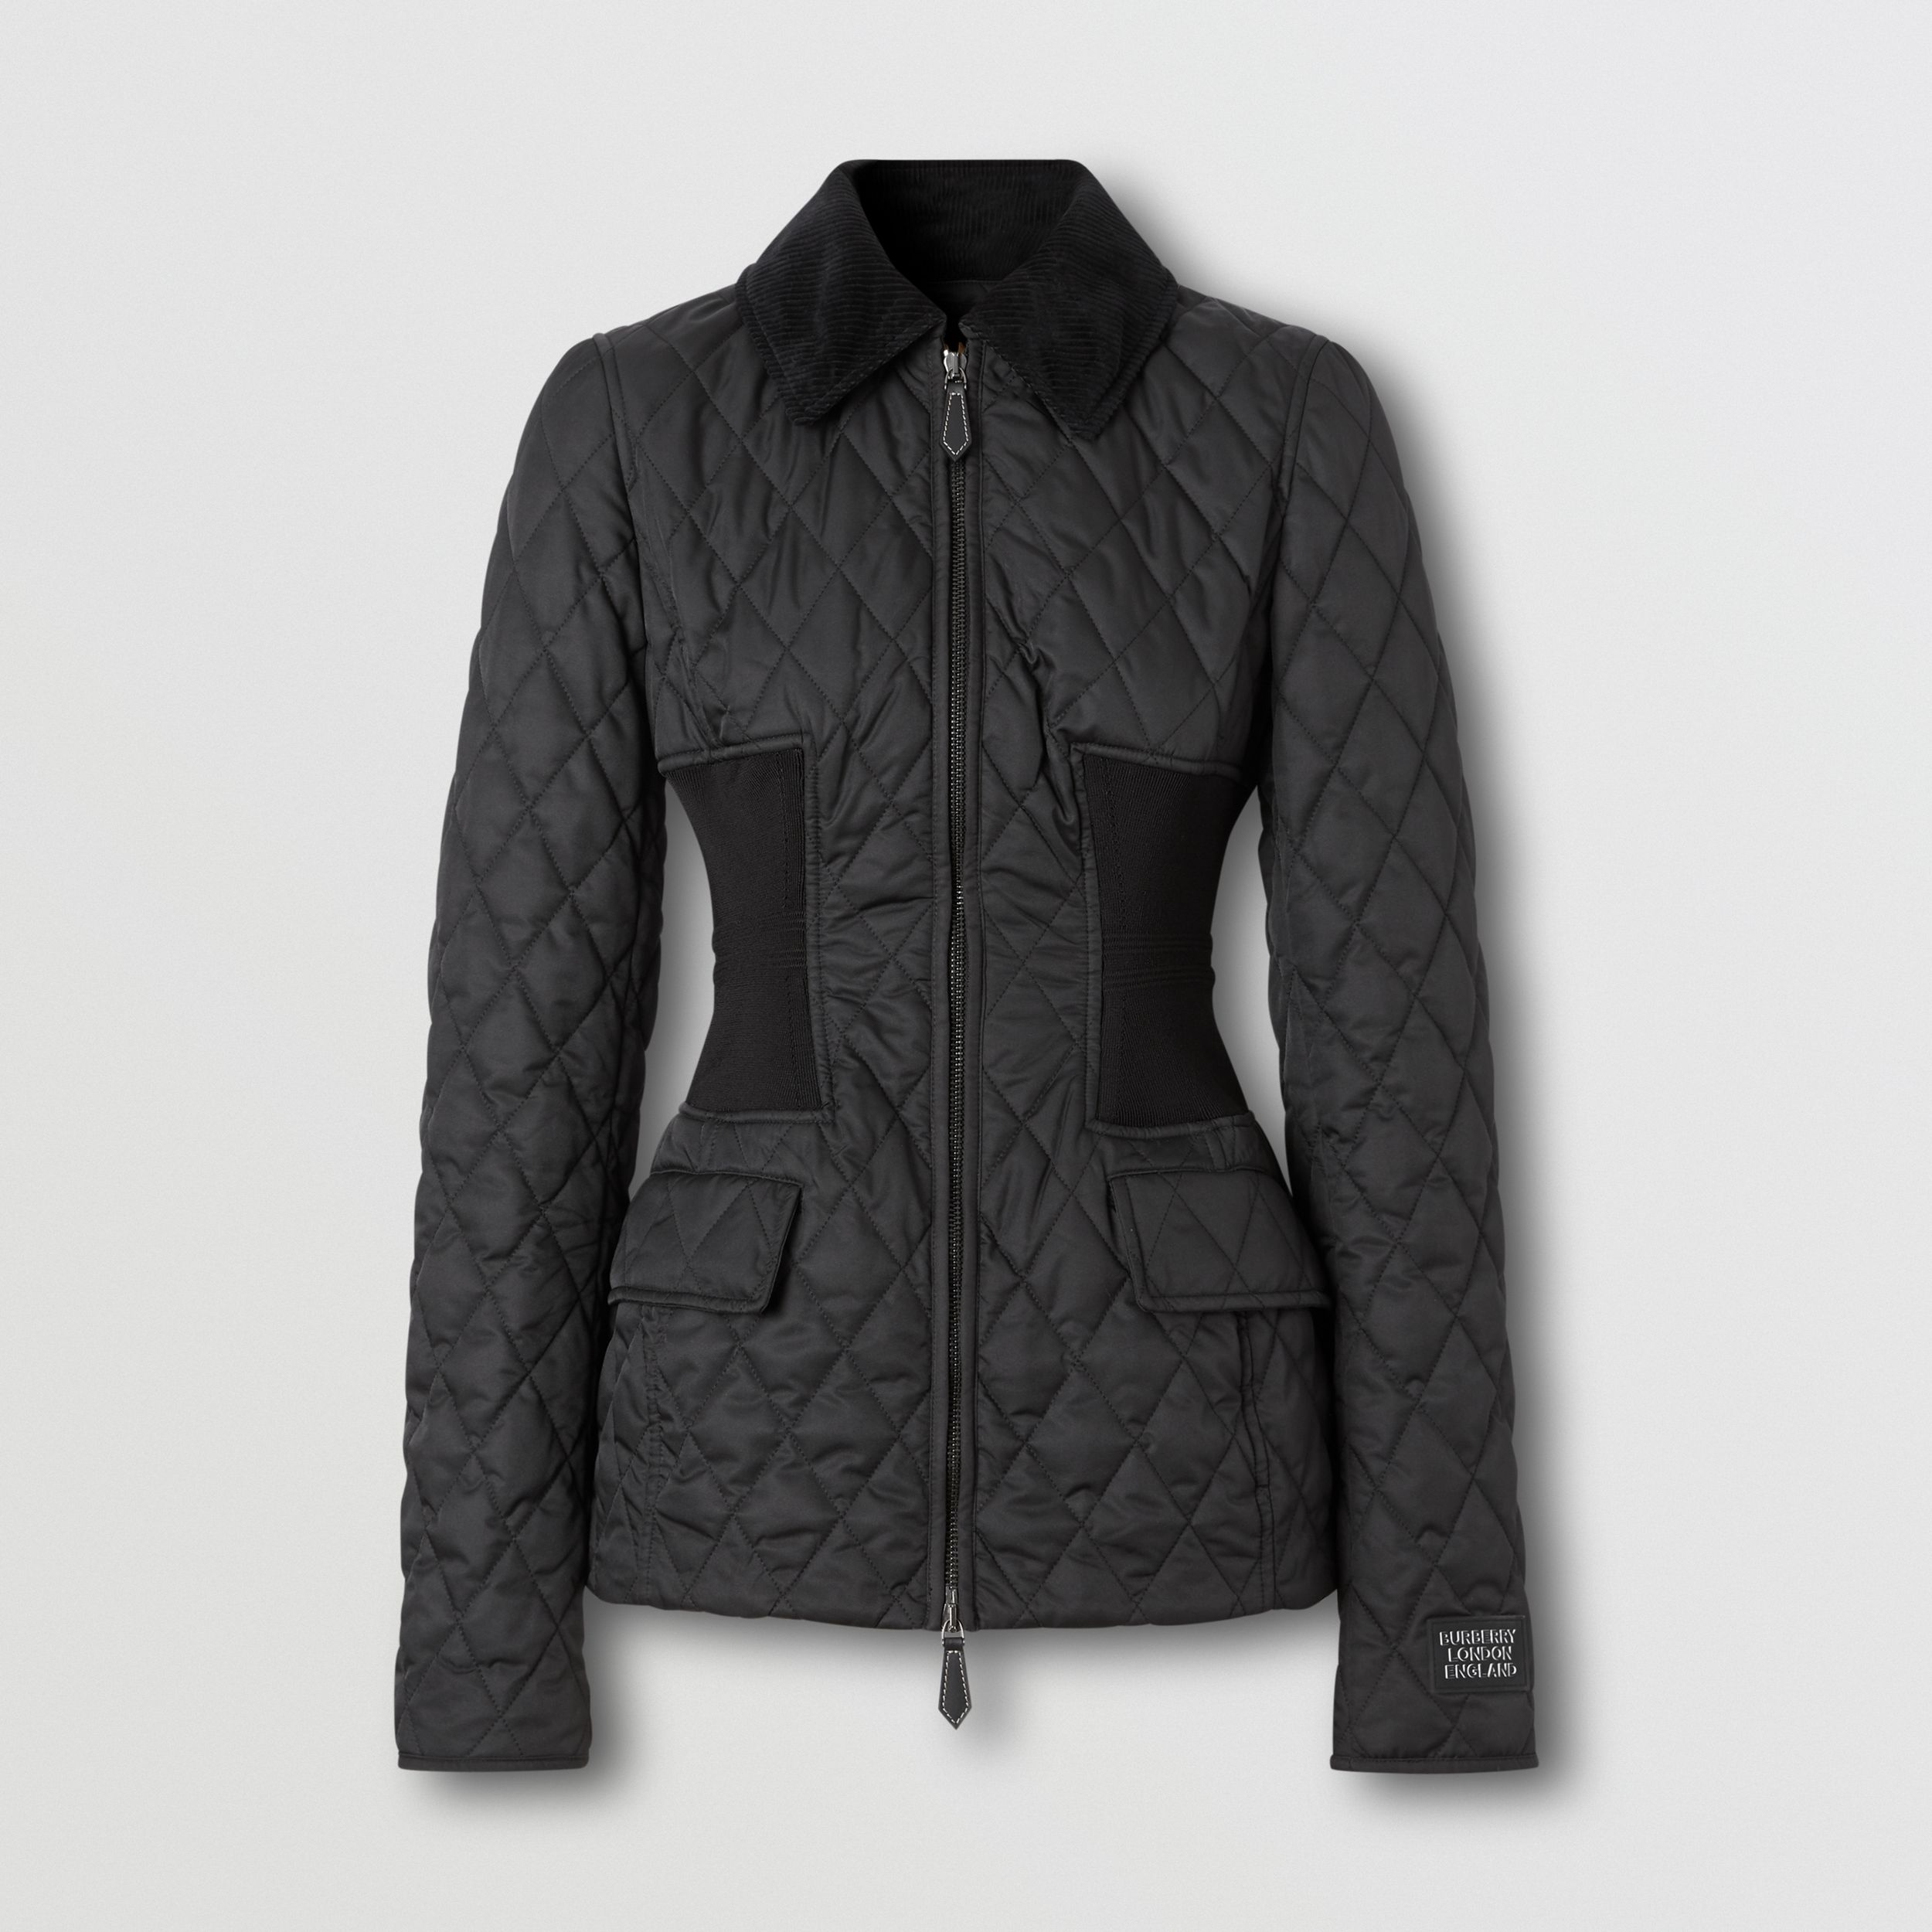 Rib Knit Panel Diamond Quilted Barn Jacket in Black - Women | Burberry Hong Kong S.A.R. - 4